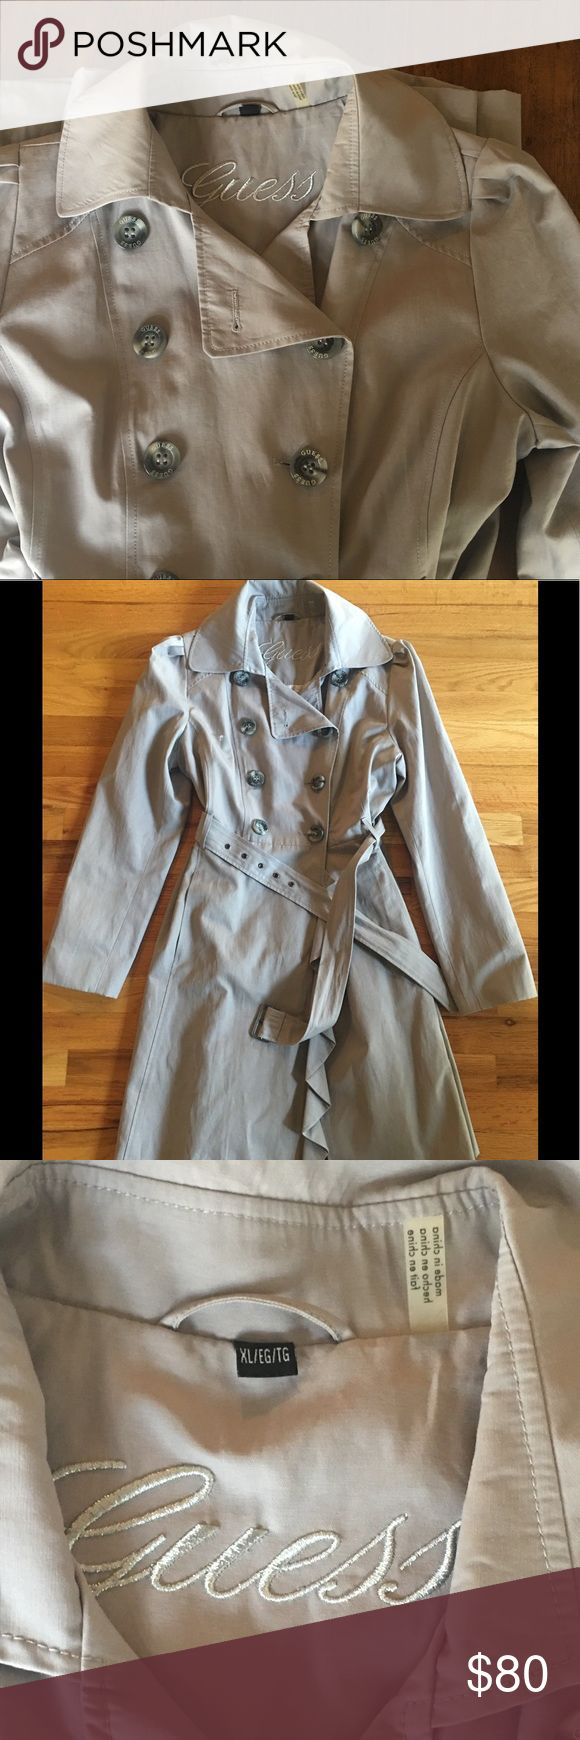 Guess ladies raincoat Piped fit & flare trench coat. Beautiful double breasted & flared skirt w waist defining belt. Water resistant Last picture is of a similar trench from Guess without the flare Guess Jackets & Coats Trench Coats